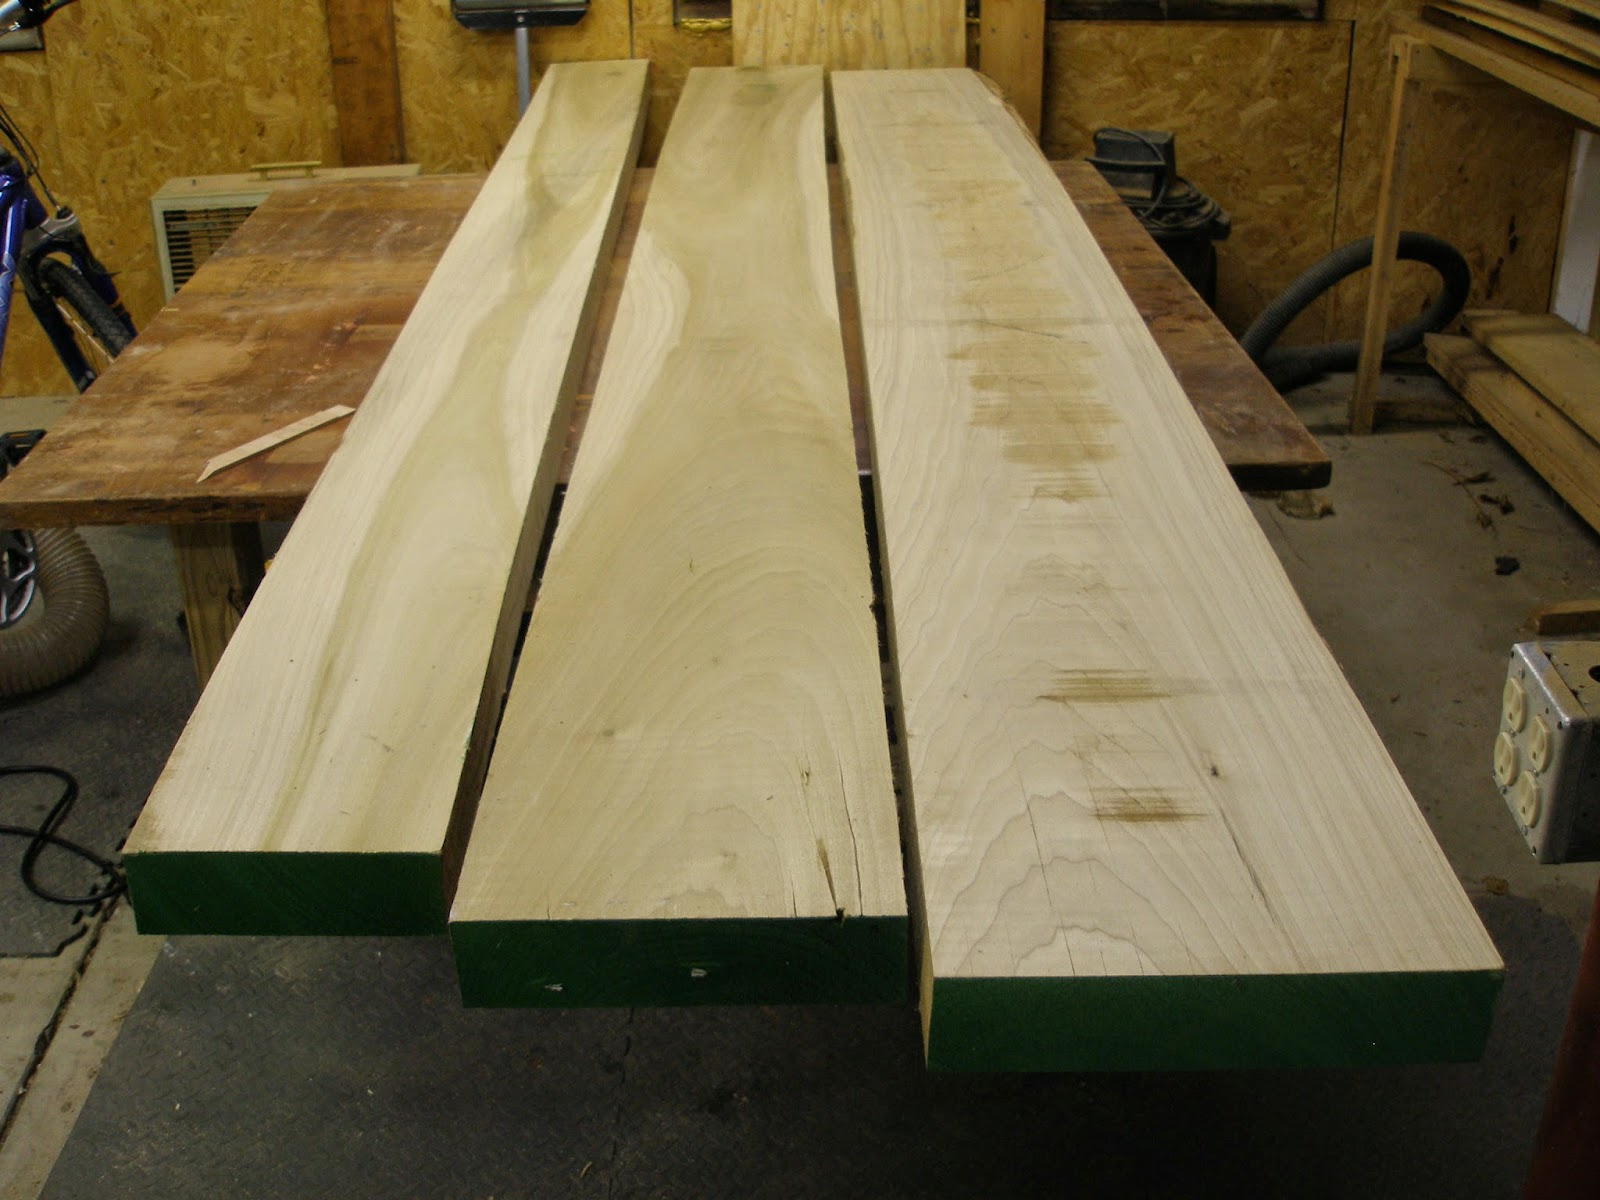 is poplar good for furniture. here it is three 10 foot pieces of poplar had good grain and color the were about 15 12 8 inches wide there a little more than for furniture